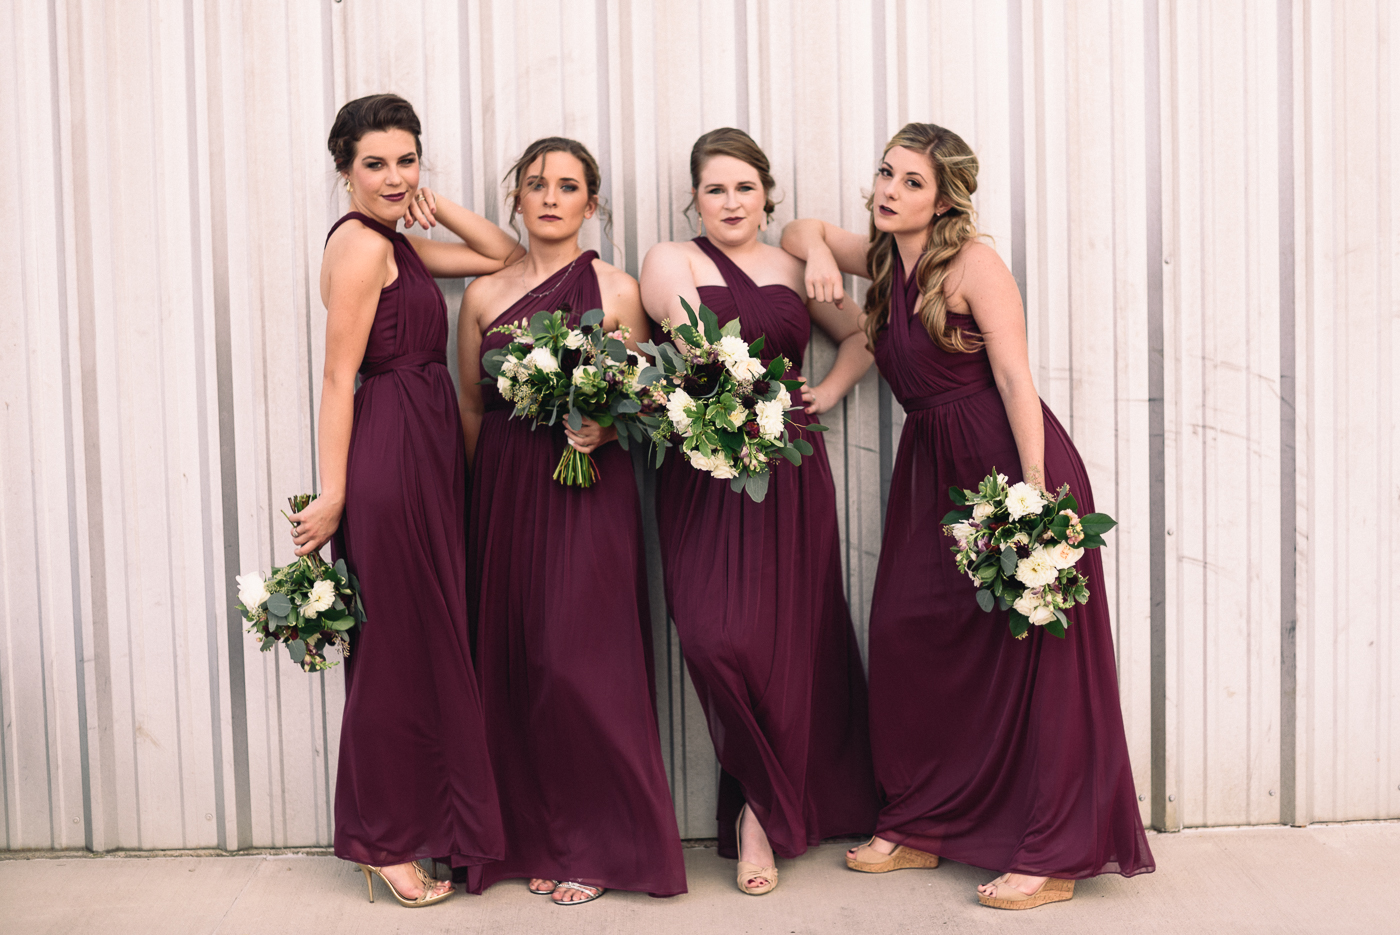 sassy bridesmaids maroon dresses bouquet